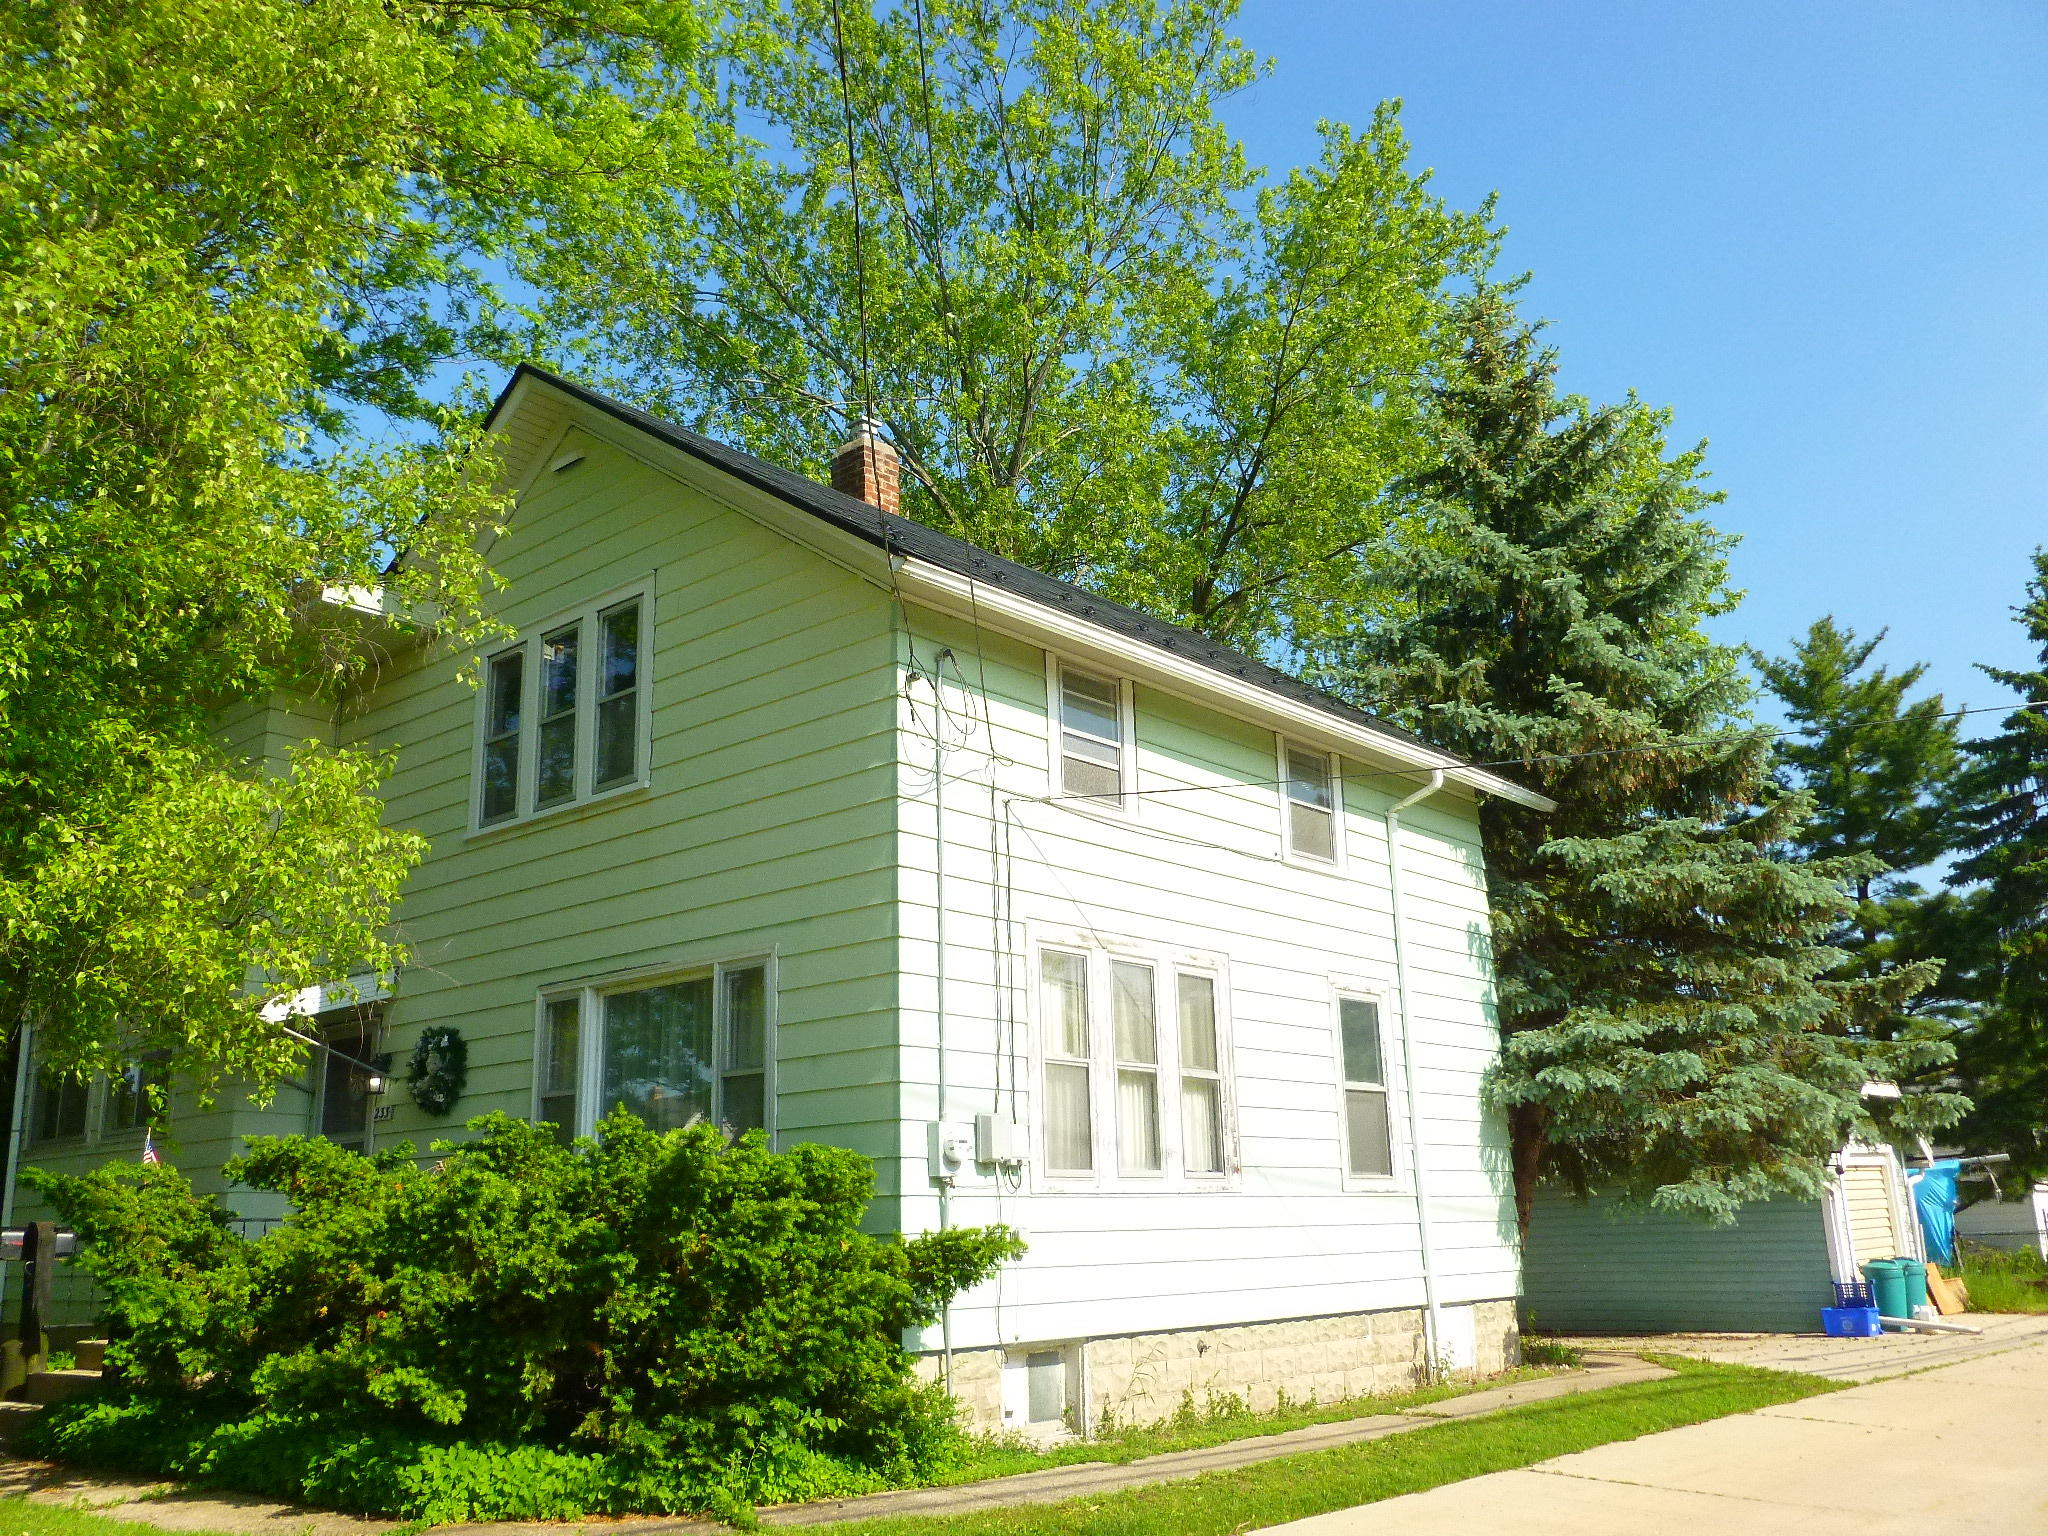 233 Wabash Ave, Waukesha, Wisconsin 53186, 4 Bedrooms Bedrooms, 8 Rooms Rooms,2 BathroomsBathrooms,Single-Family,For Sale,Wabash Ave,1617073